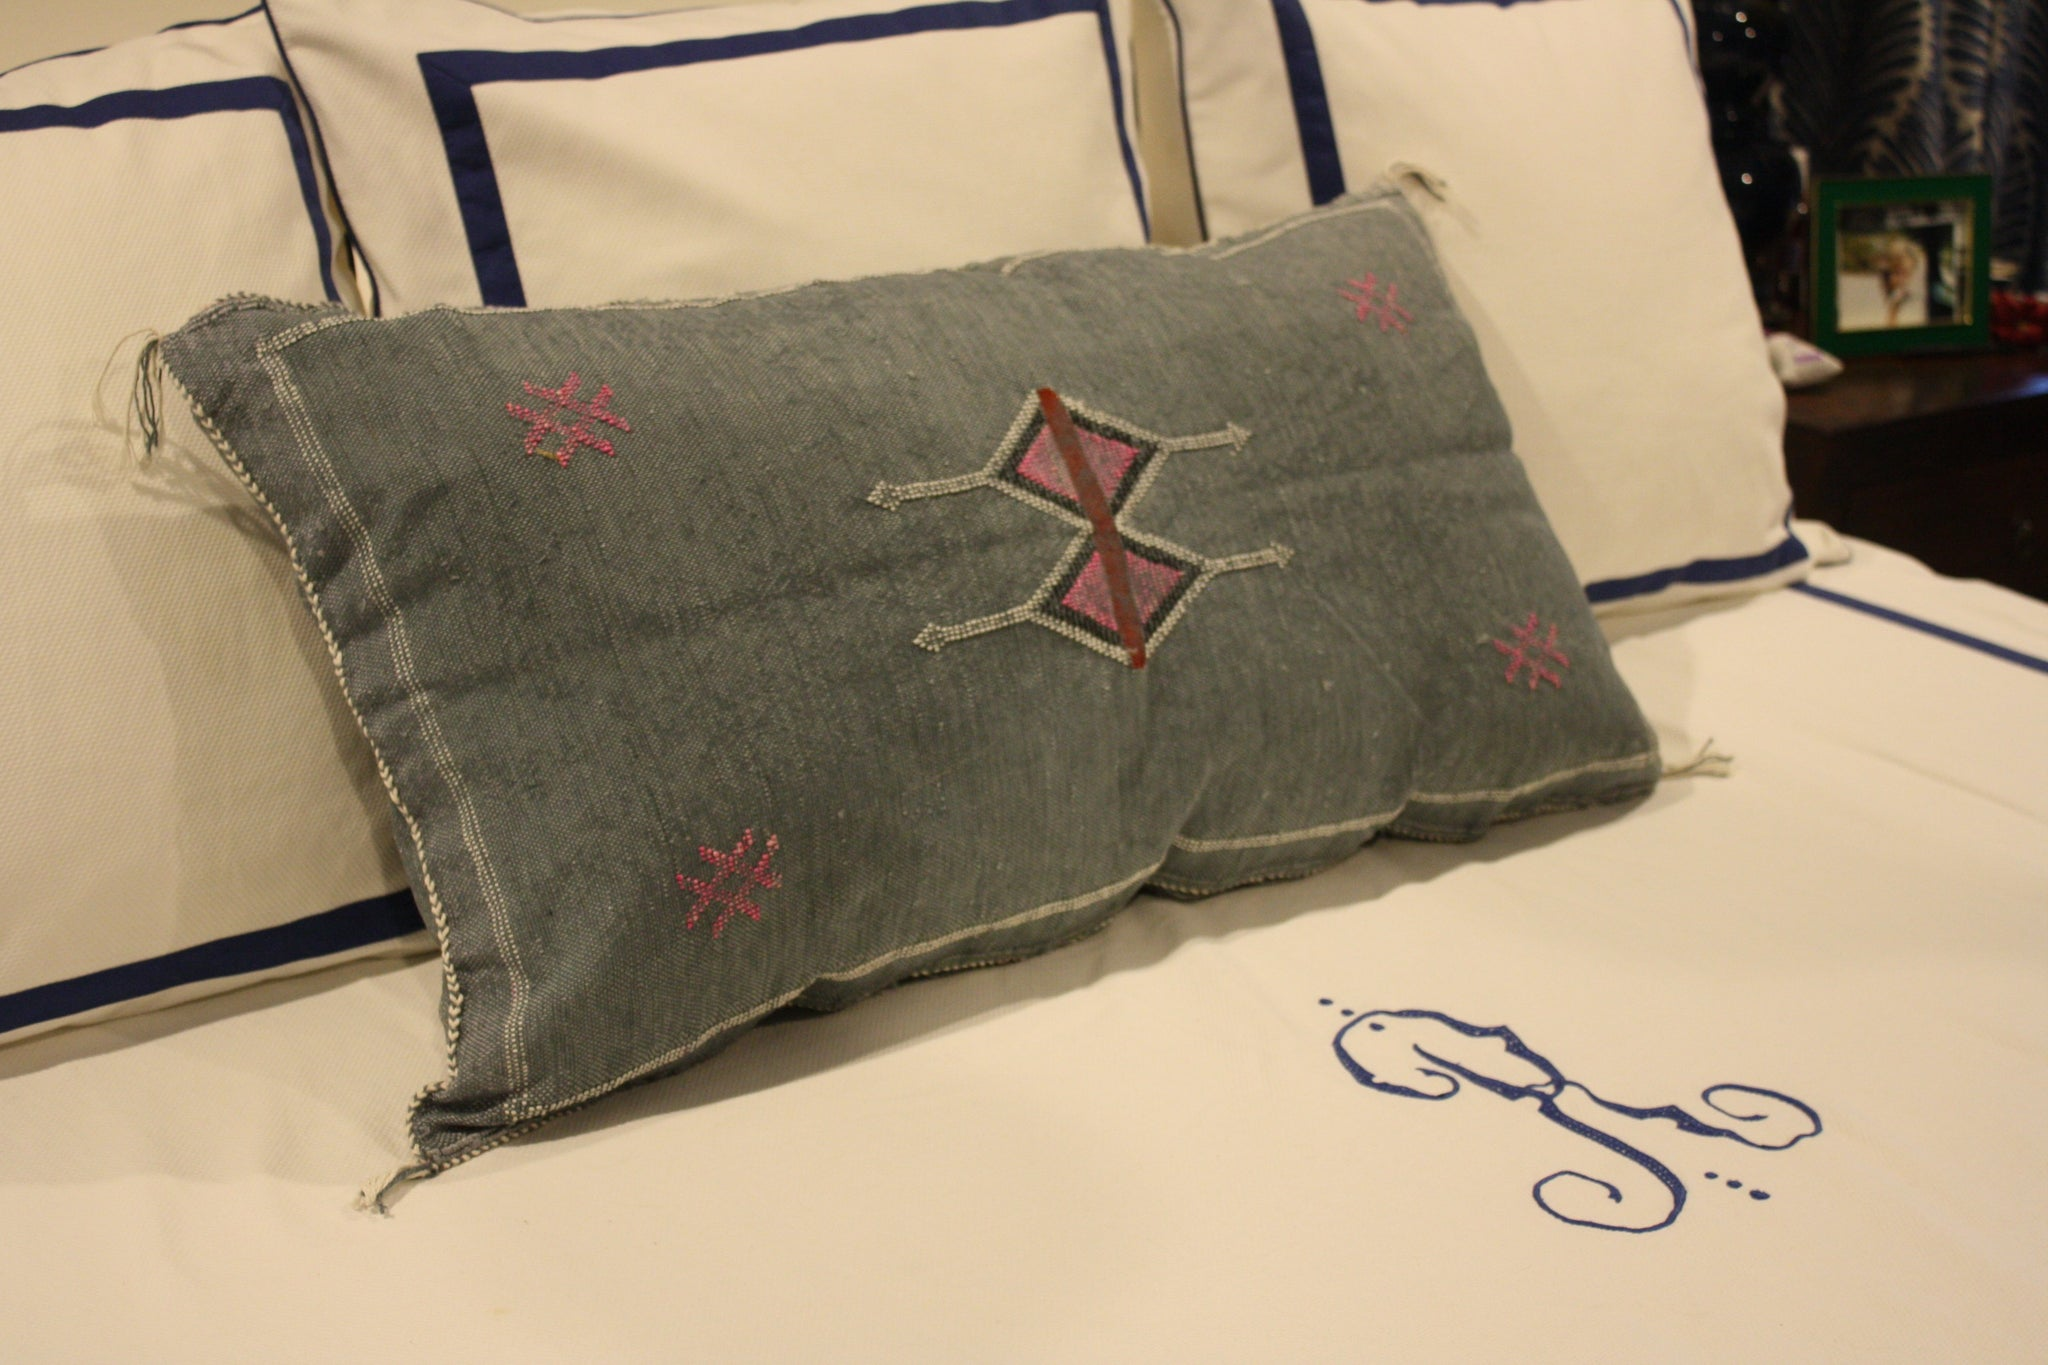 Lumbar cactus silk pillow with insert handmade in Morocco 30' x 20' grey